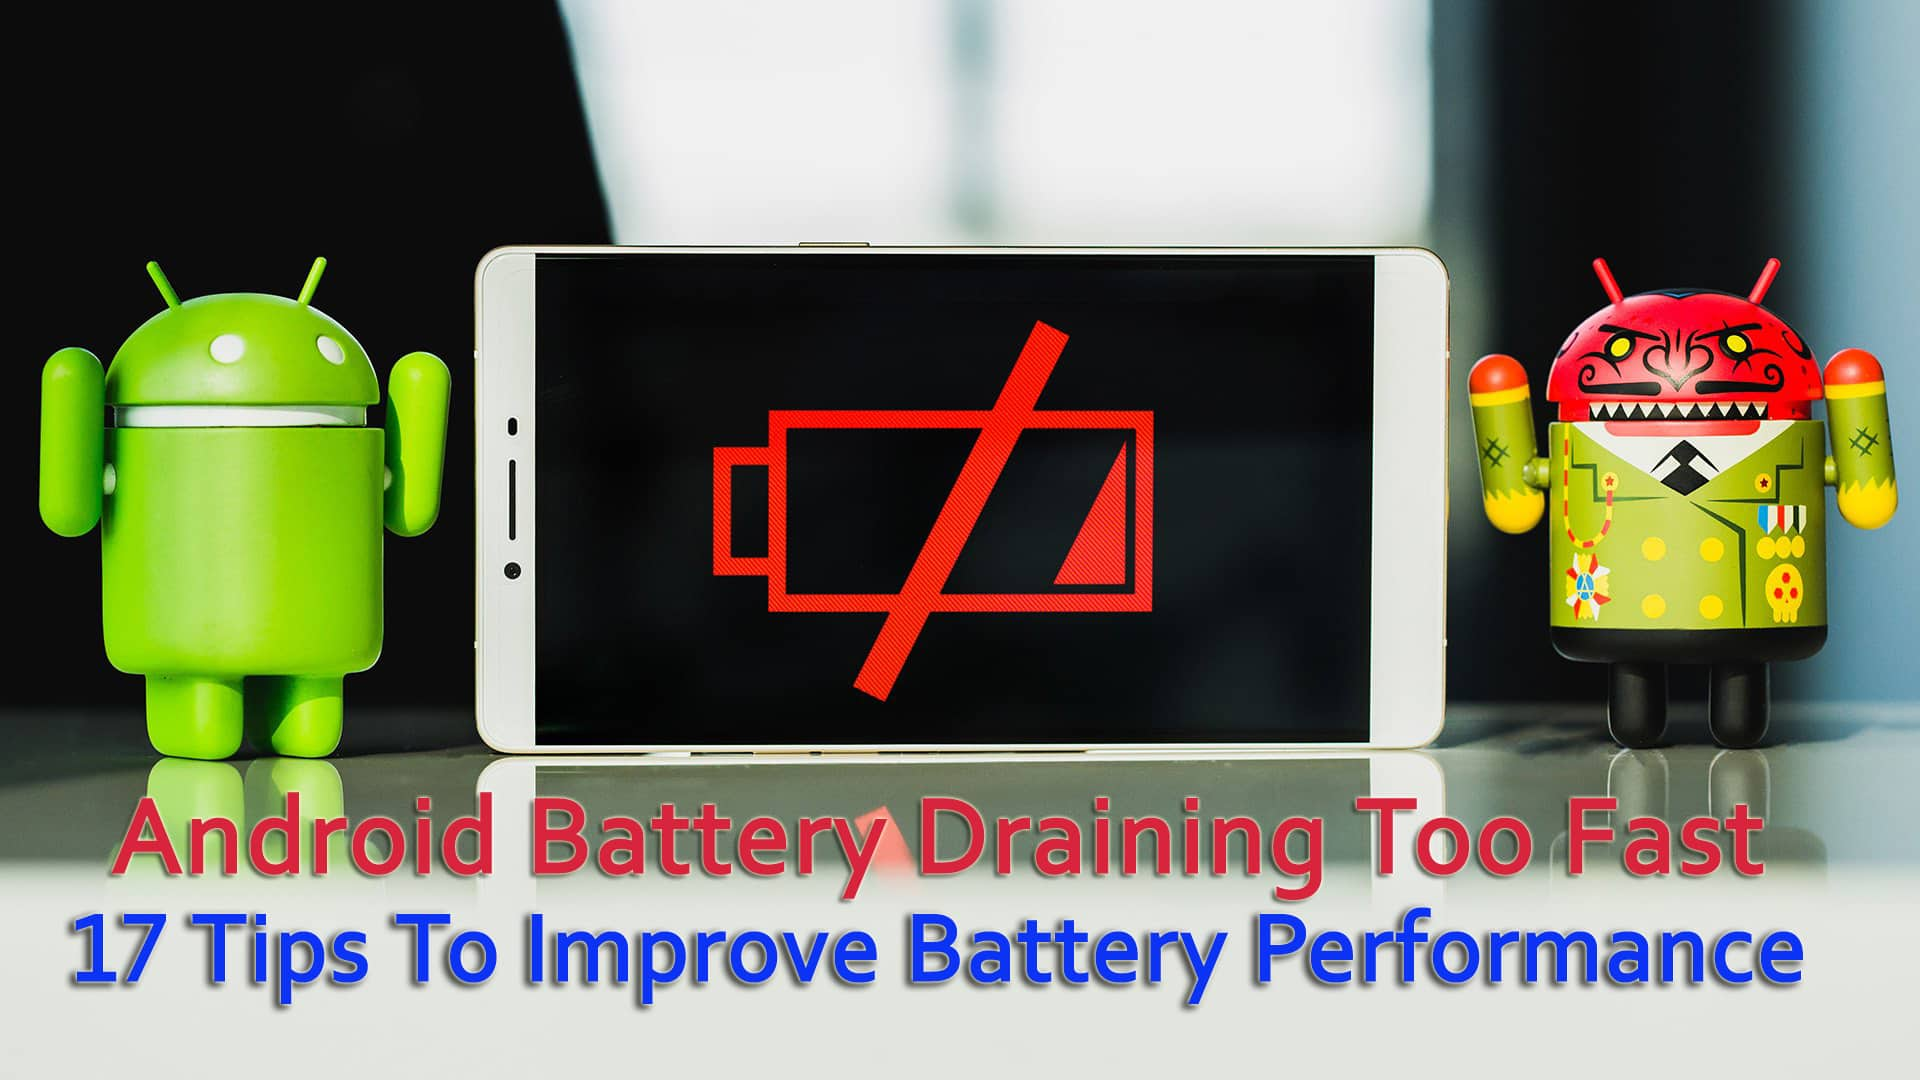 Android Battery Draining Too Fast- 17 Tips To Improve Battery Performance